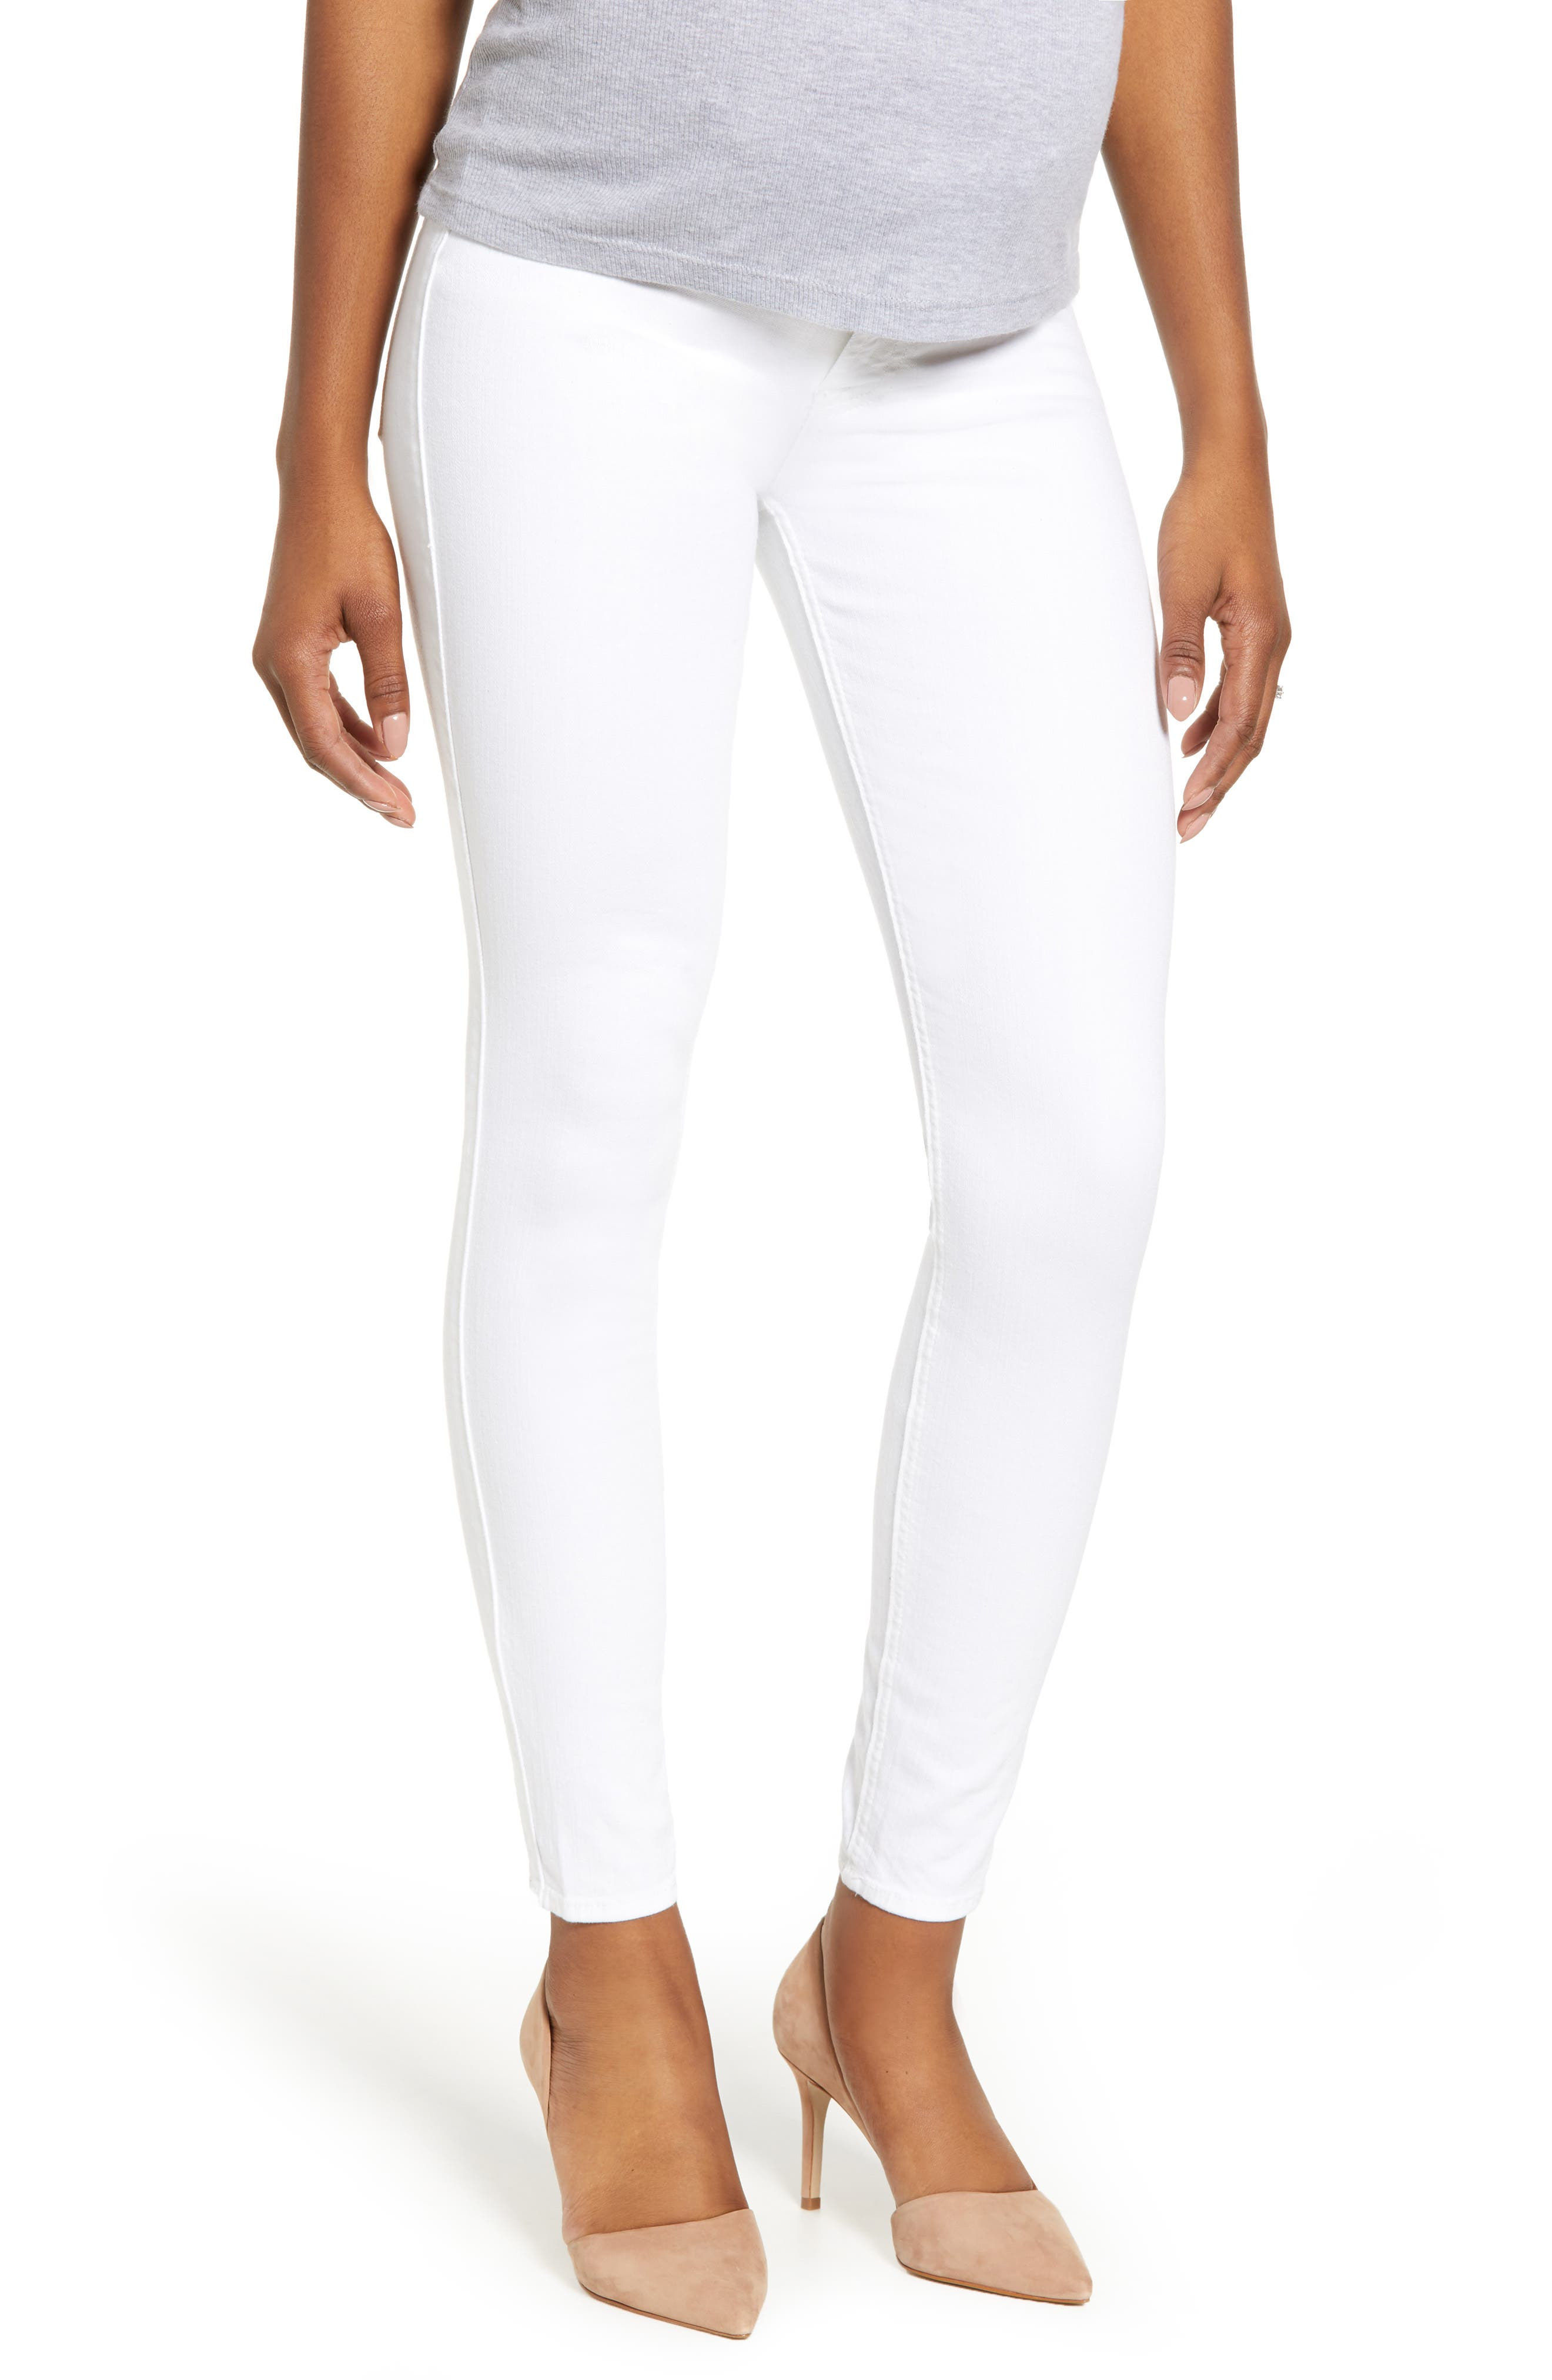 7 FOR ALL MANKIND<SUP>®</SUP>, The Ankle Skinny Maternity Jeans, Main thumbnail 1, color, CLEAN WHITE